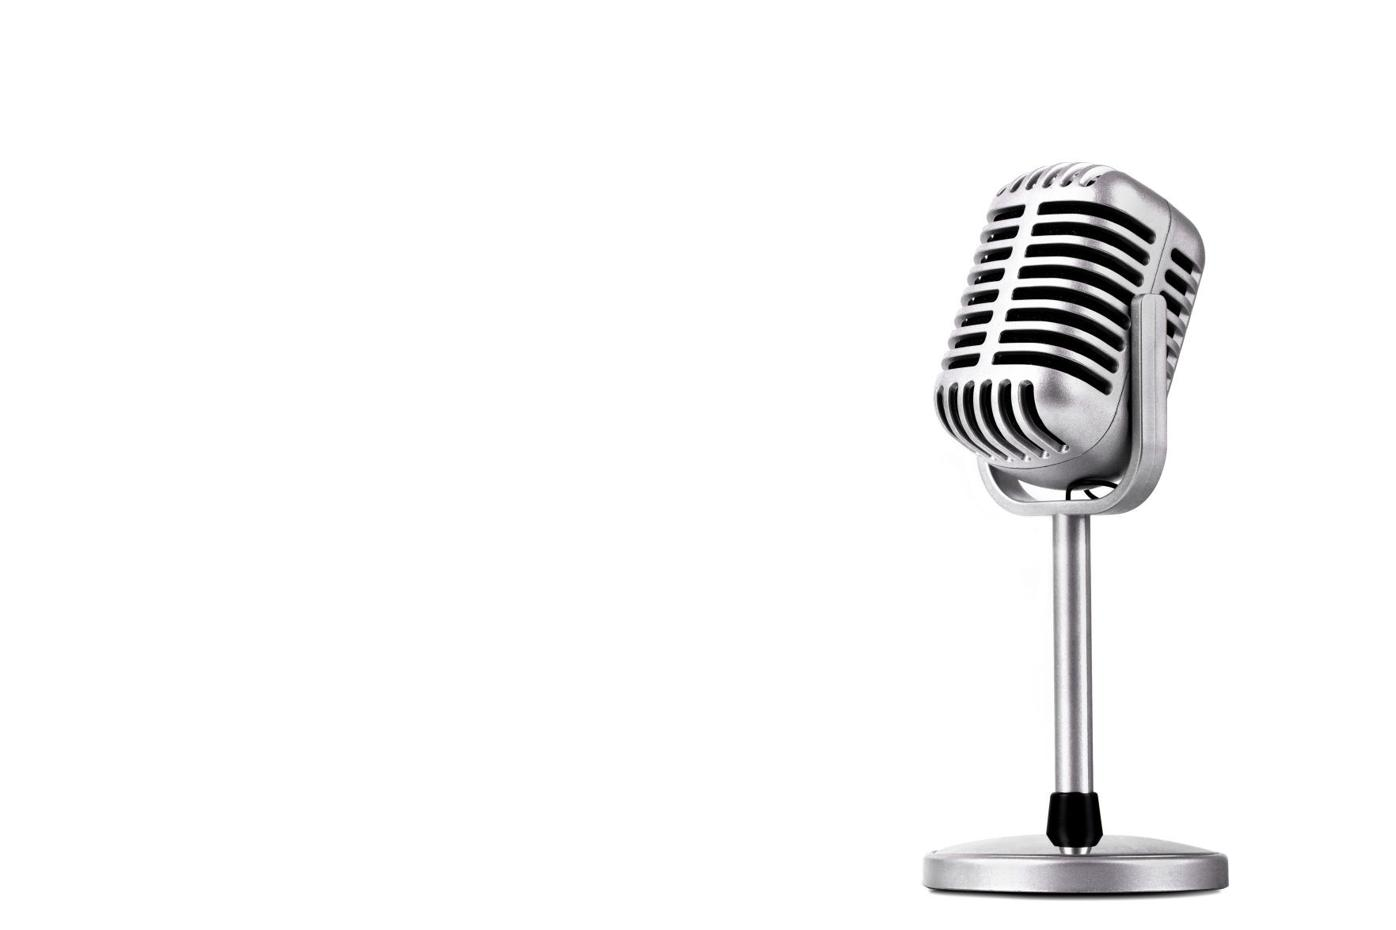 Retro,Style,Microphone,Isolated,On,White,Background